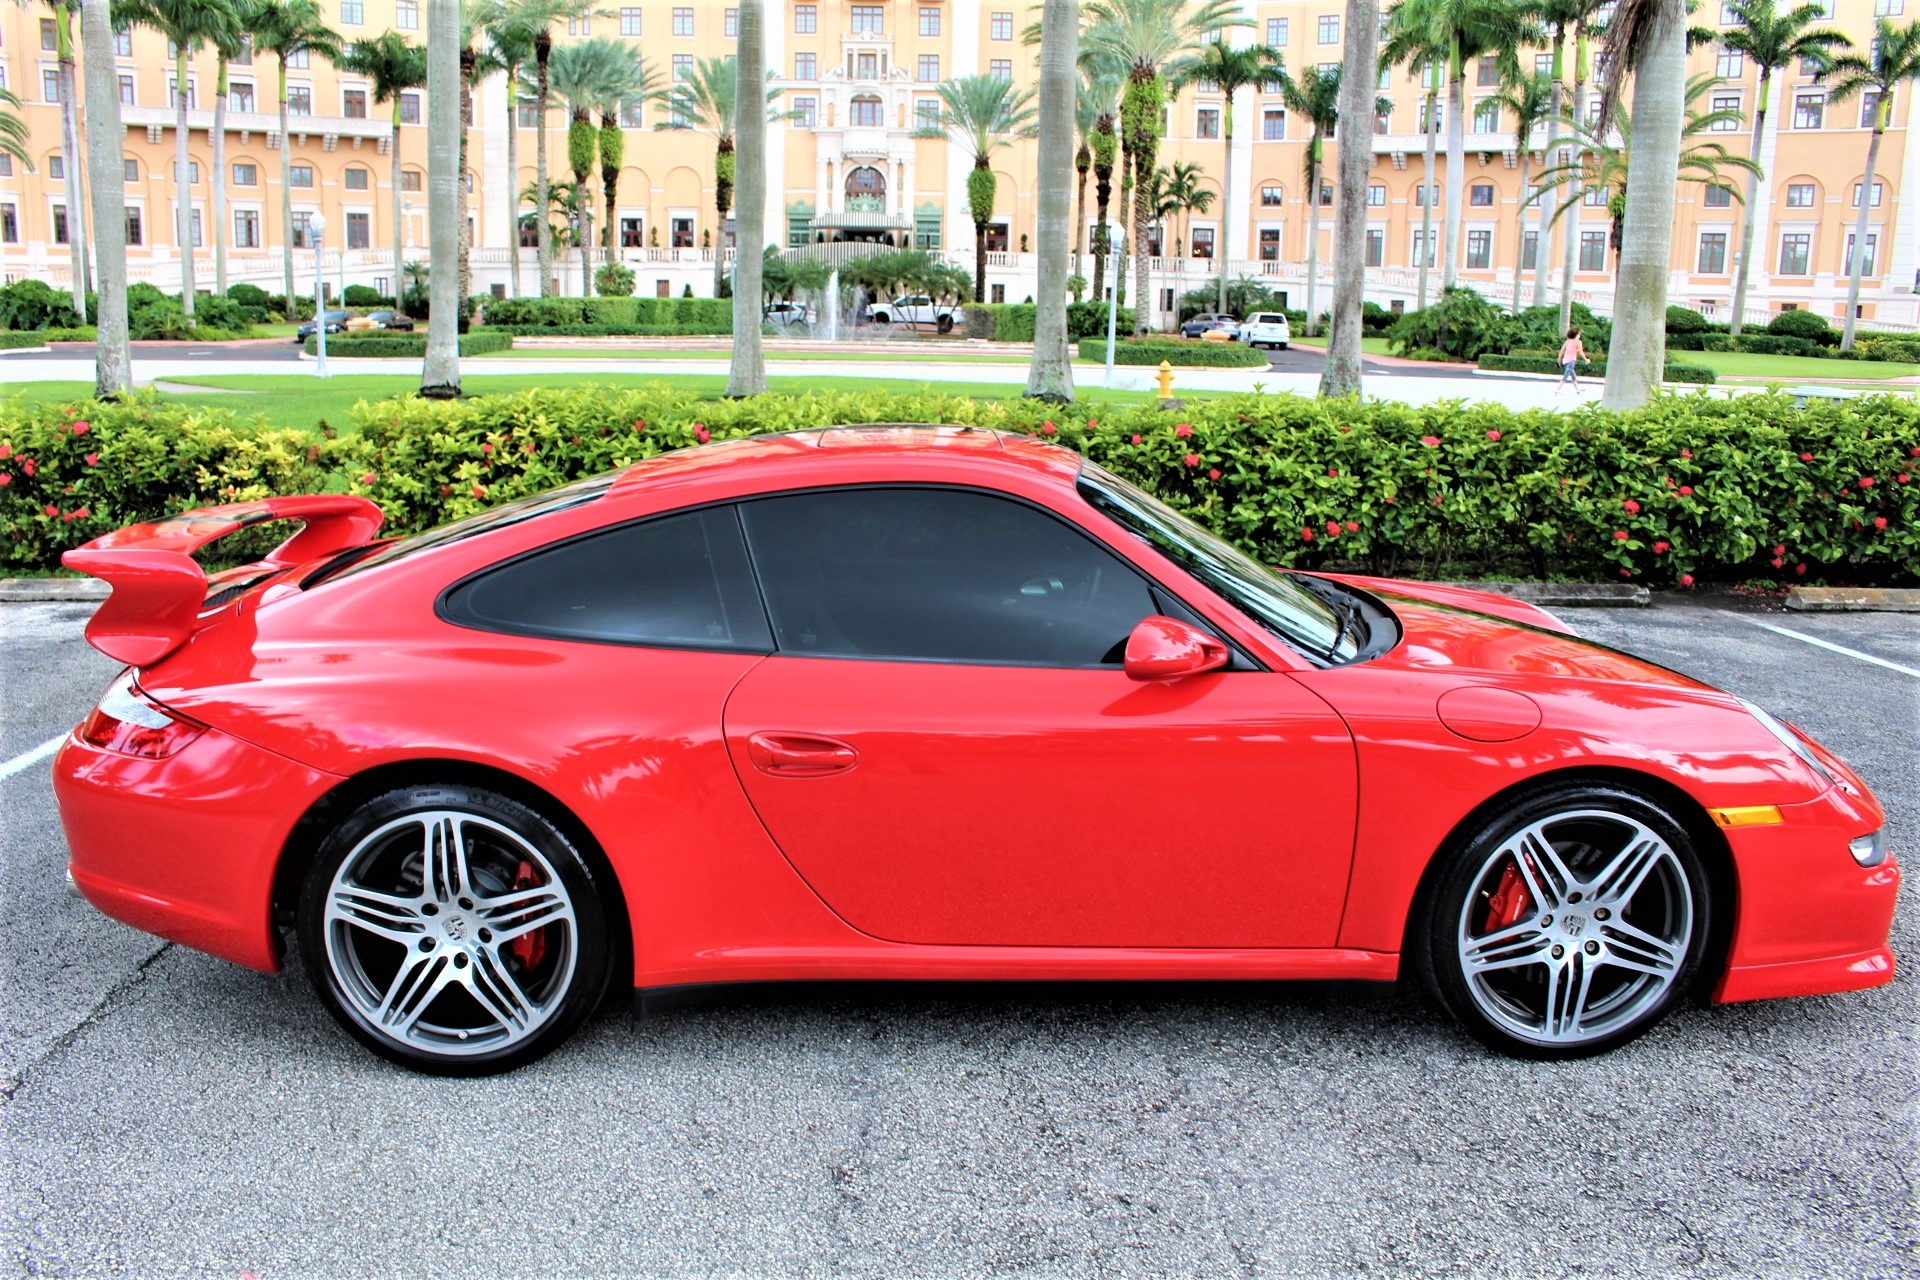 Used 2007 Porsche 911 Carrera 4S for sale Sold at The Gables Sports Cars in Miami FL 33146 4